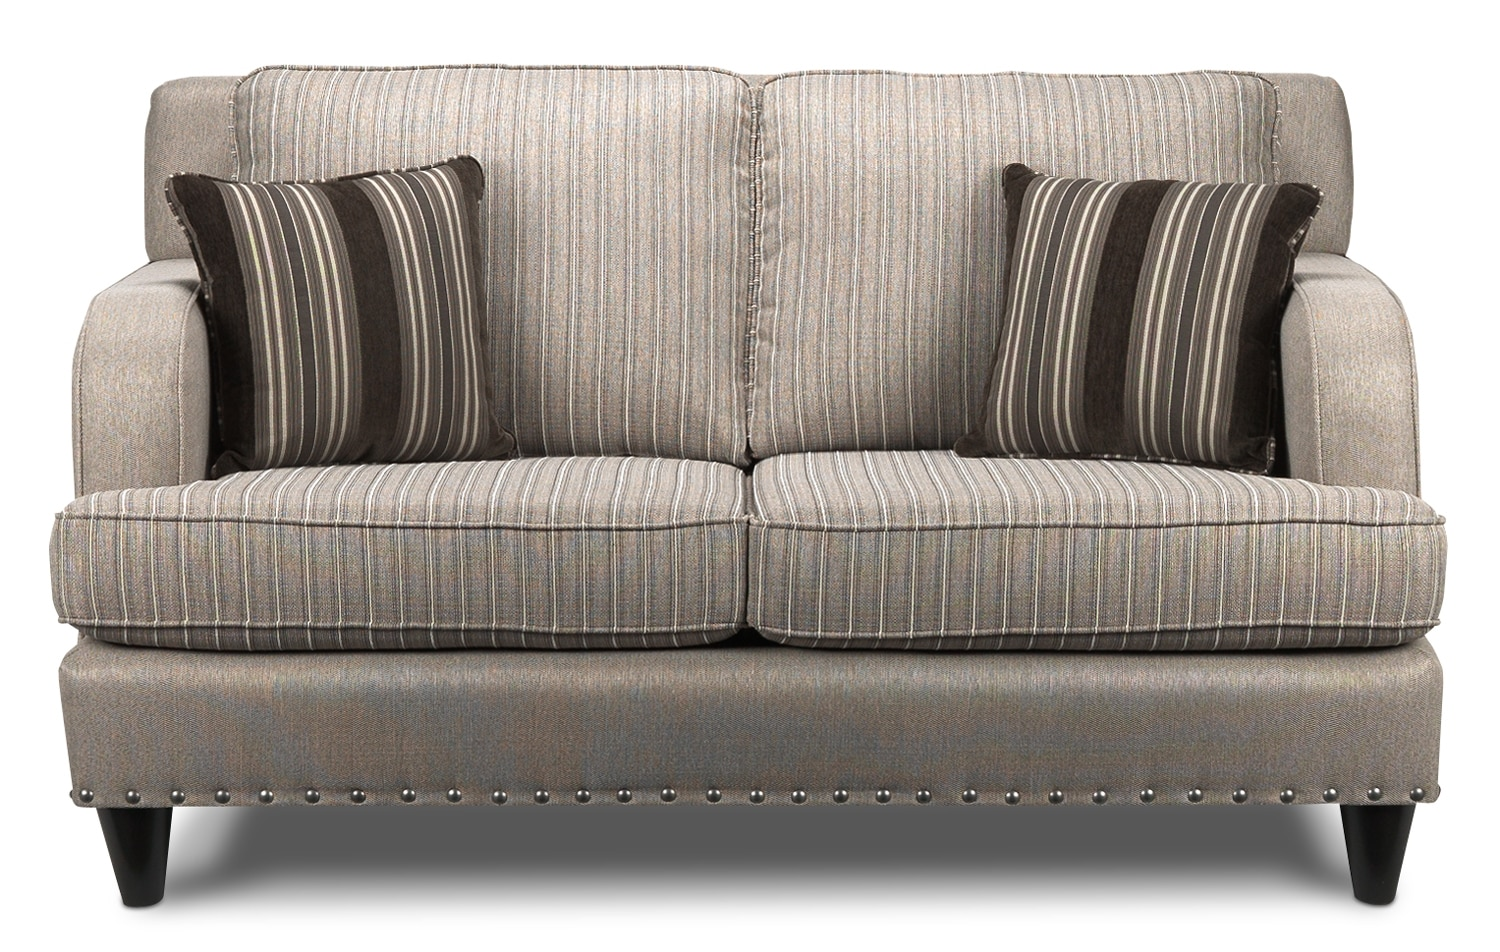 Marielle Loveseat - Light Brown